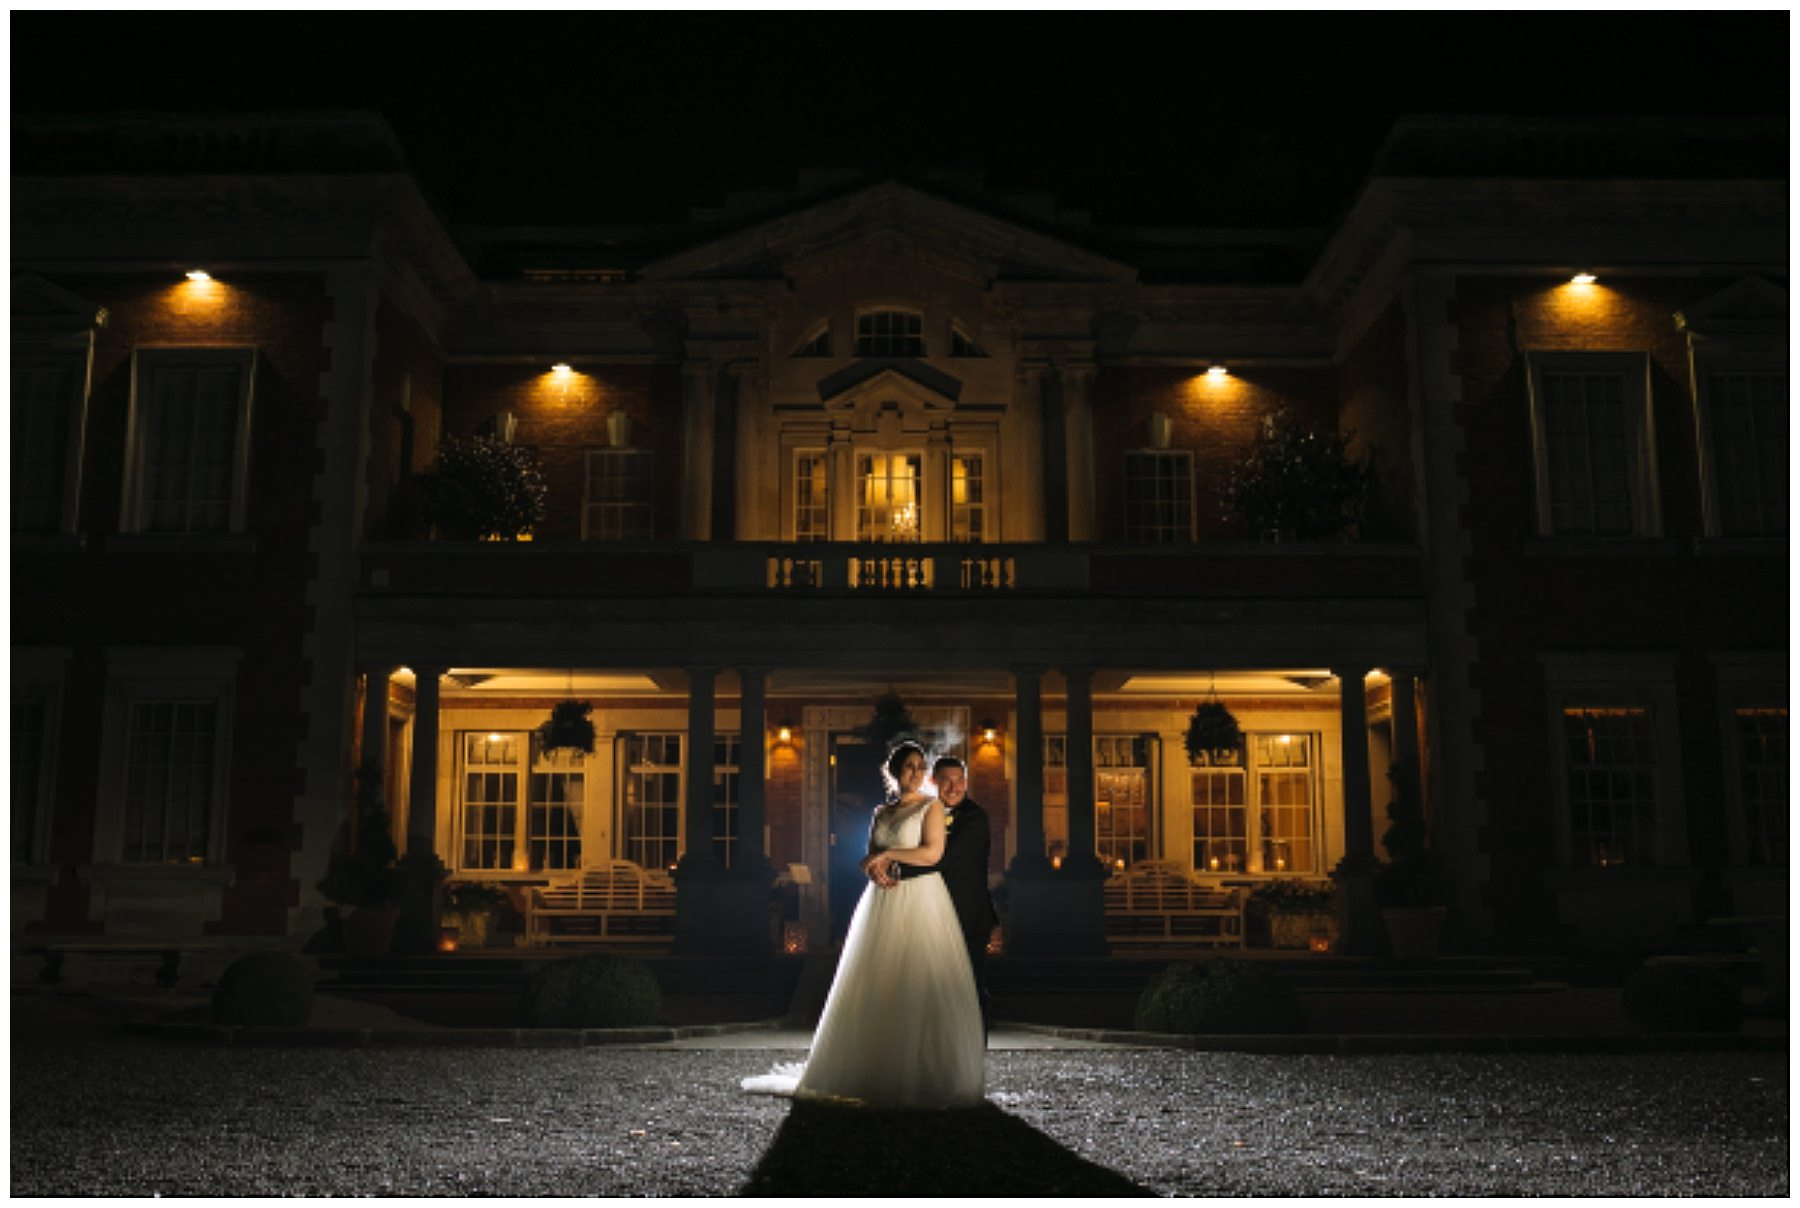 Creative wedding photography at Eaves Hall